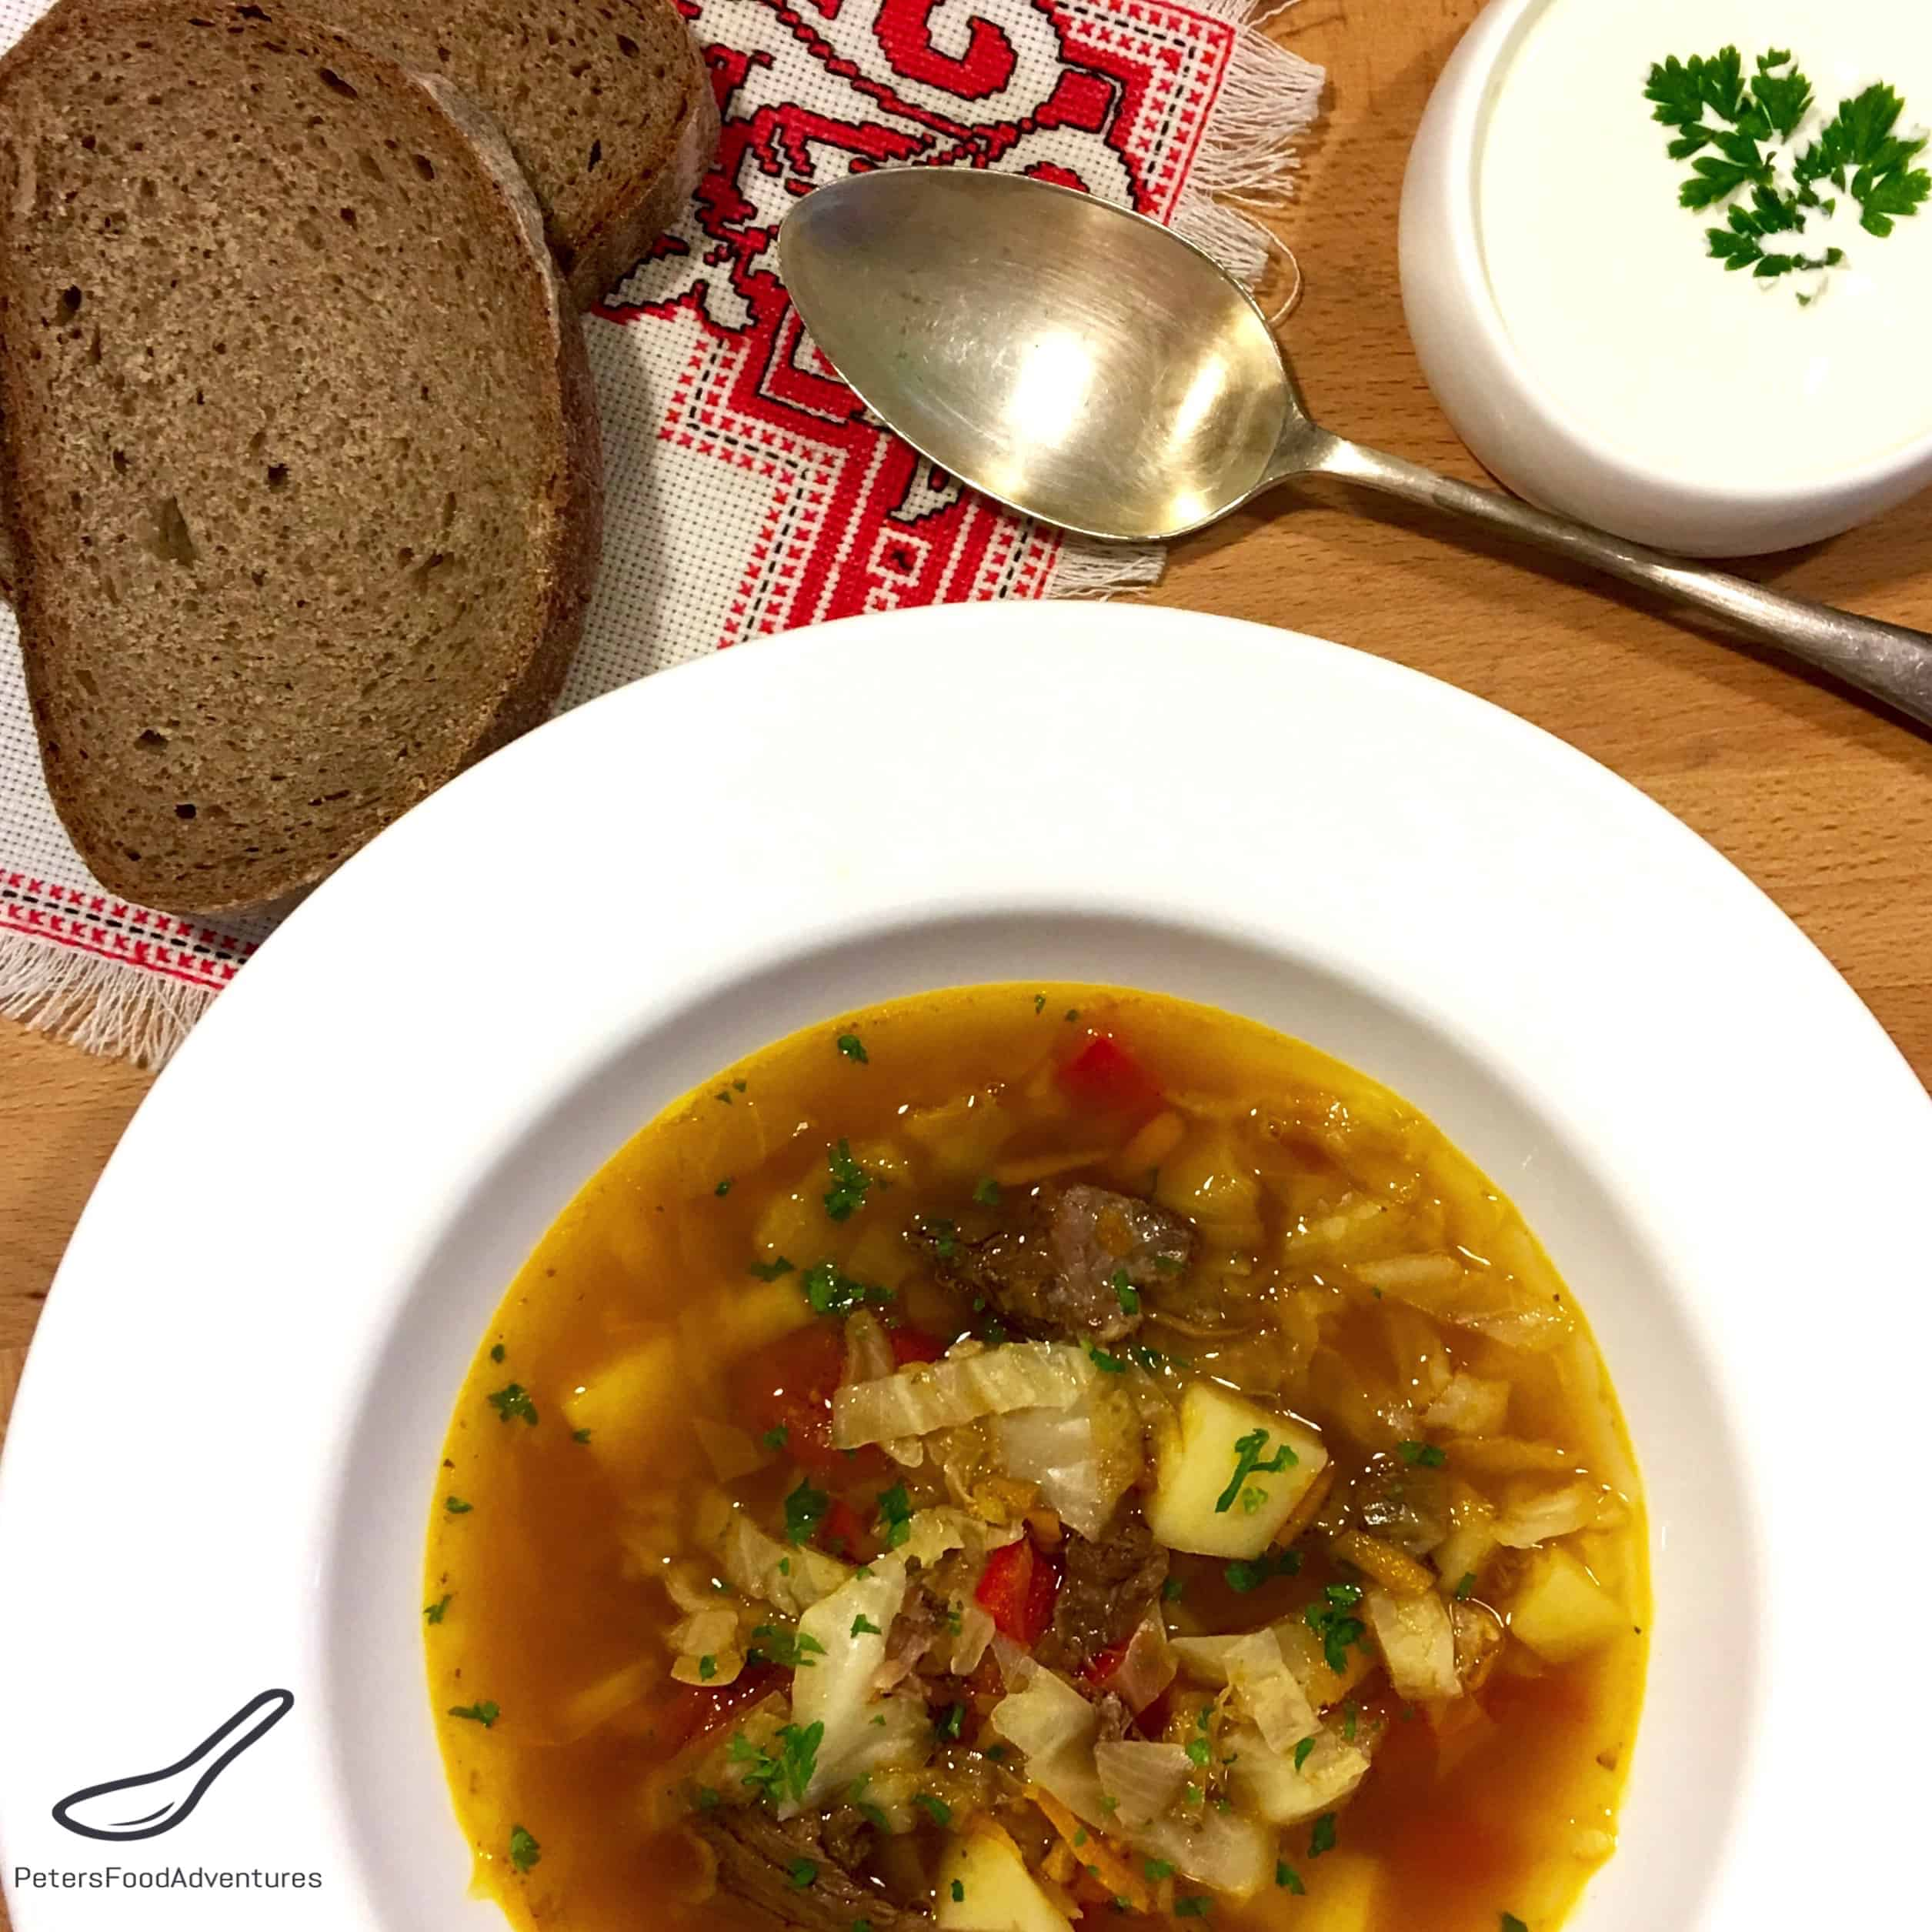 ... warming autumn favourite. Shchi (Щи) - Russian Cabbage Soup Recipe